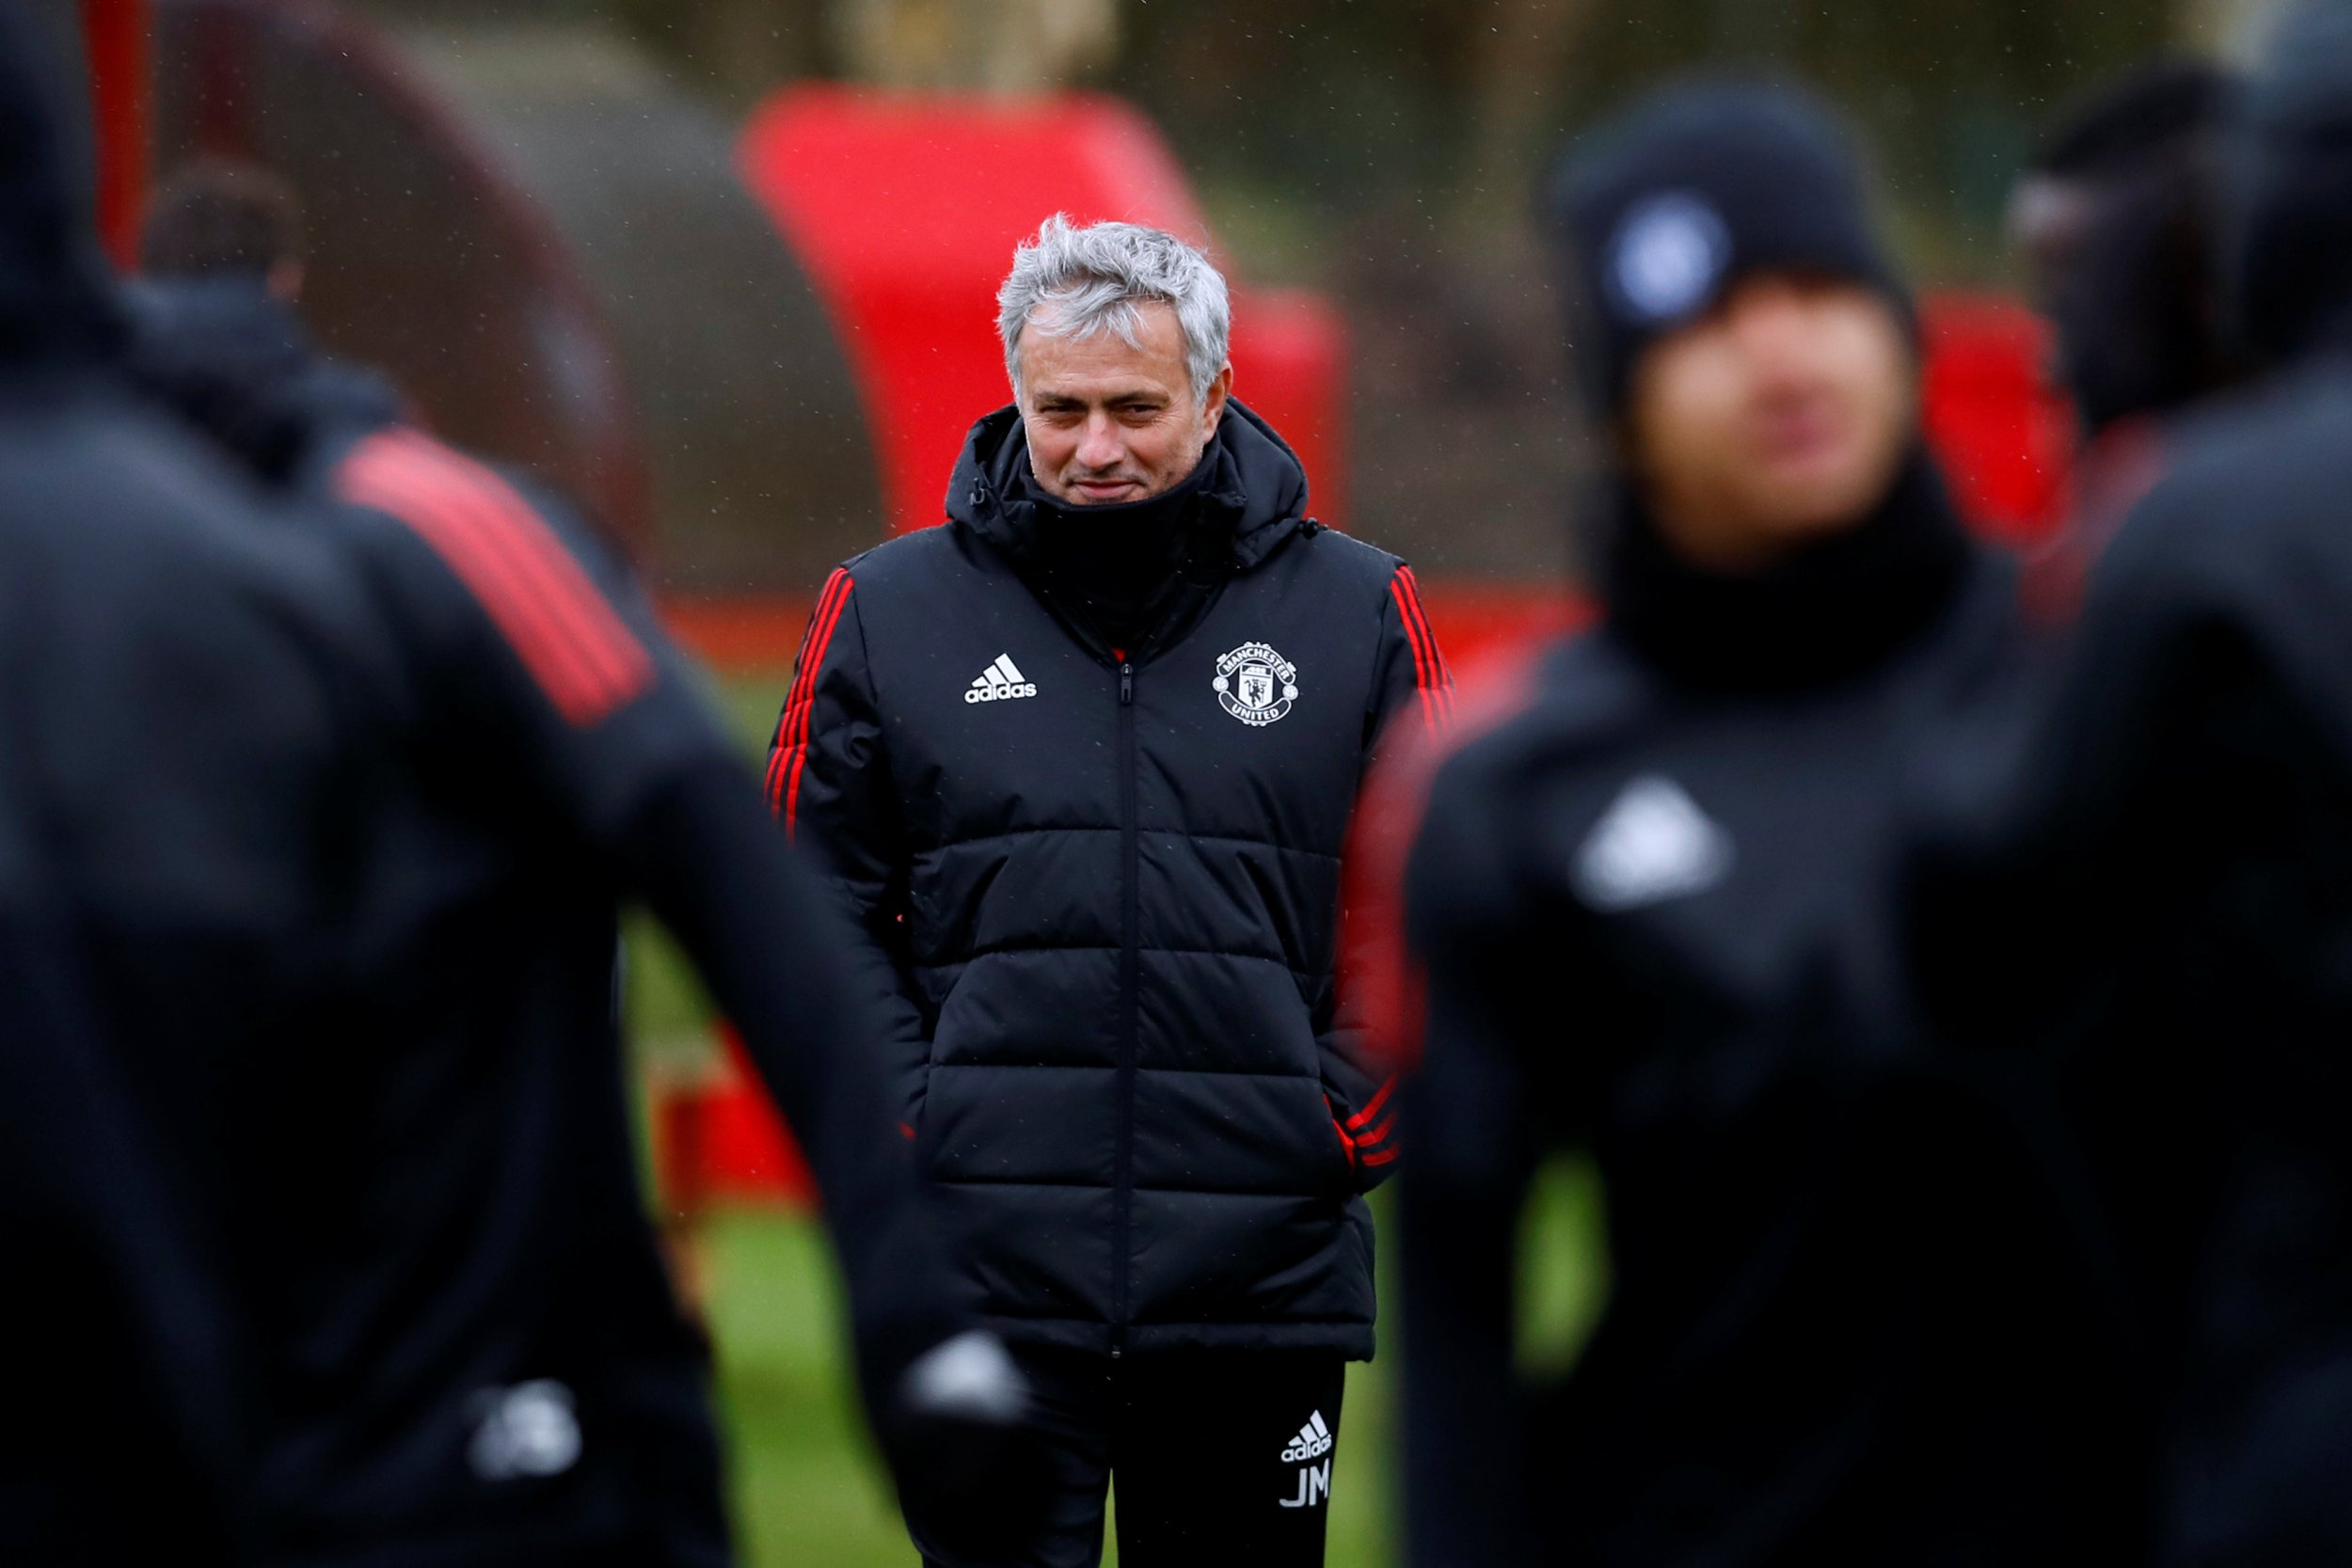 Paul Pogba trains ahead of Sevilla tie, but Manchester United quartet ruled out